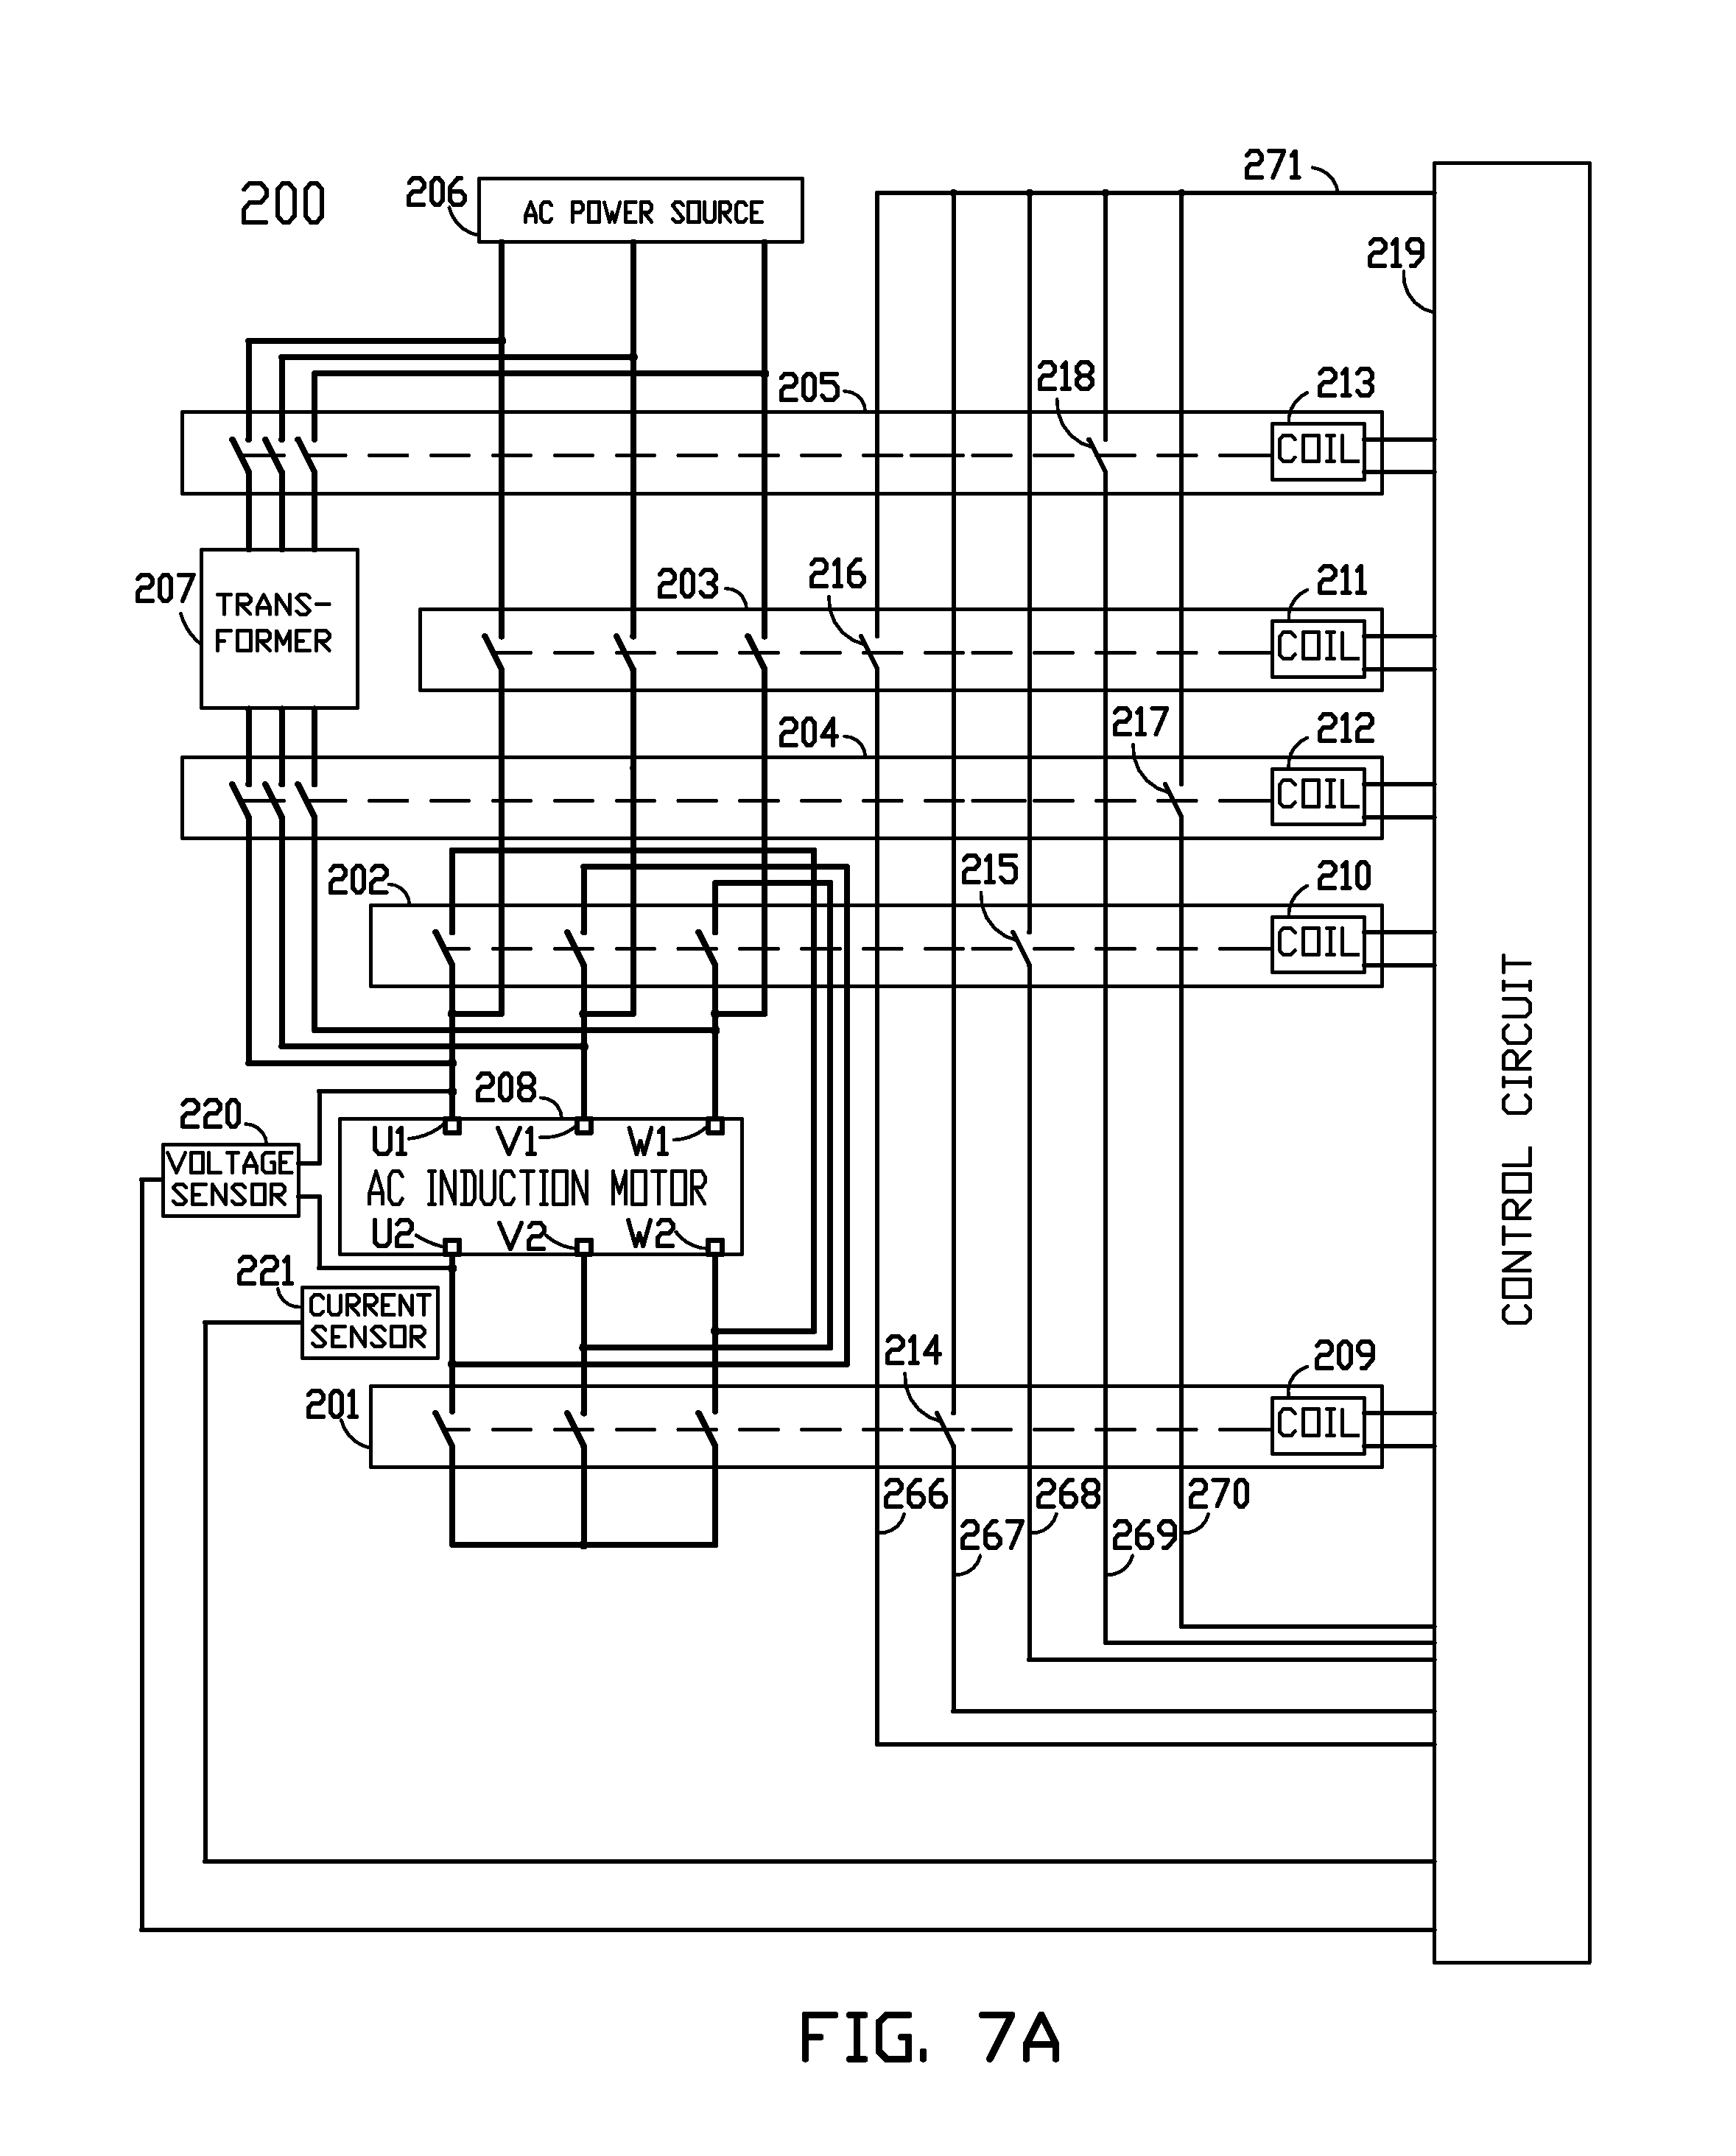 Circuit Diagram Of Semi Automatic Star Delta Starter on lenel 1320 pdf